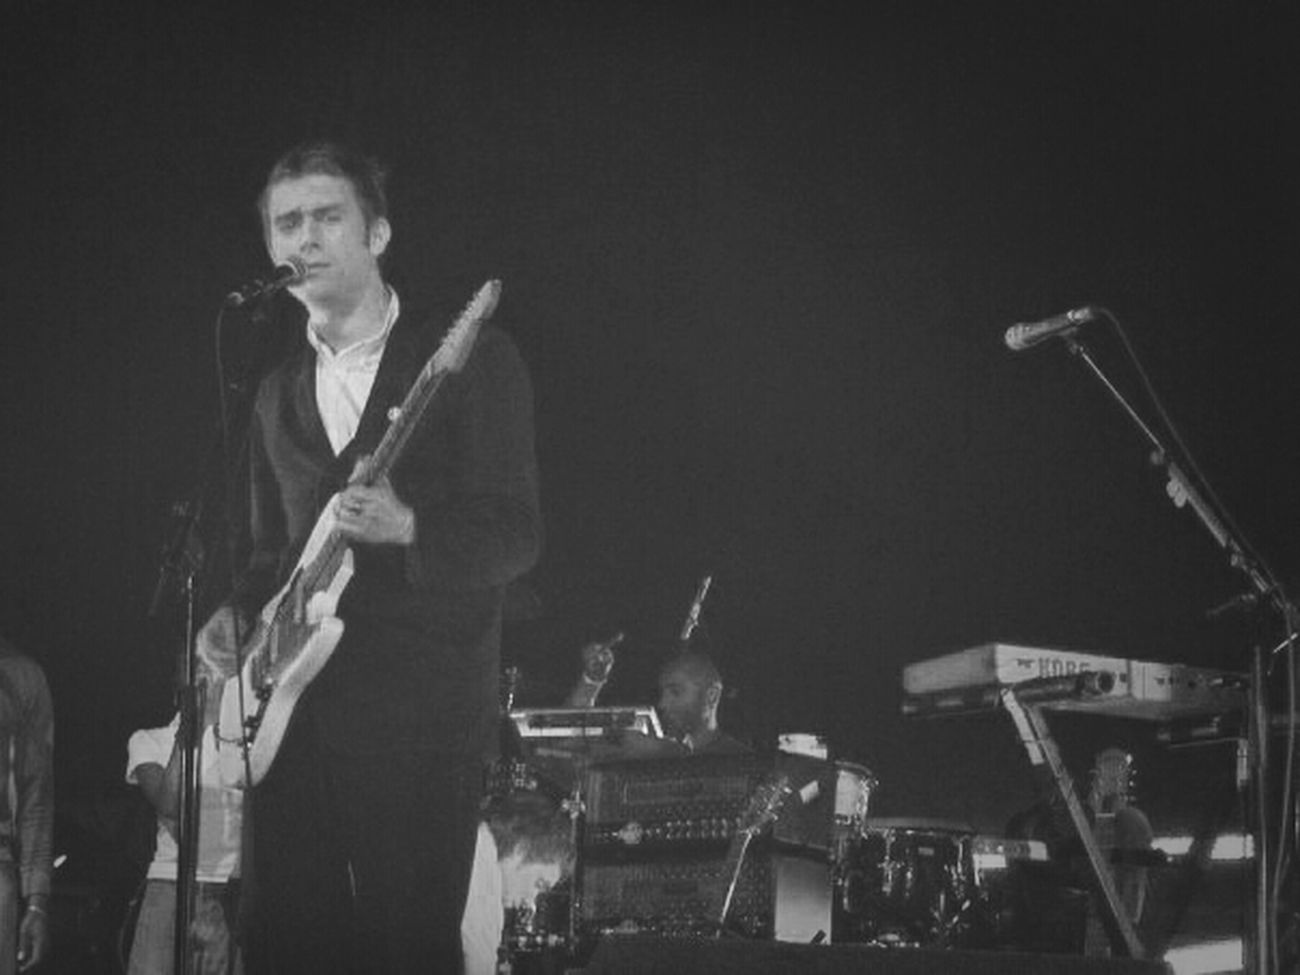 Bandswelove Blur live in Cologne 2003